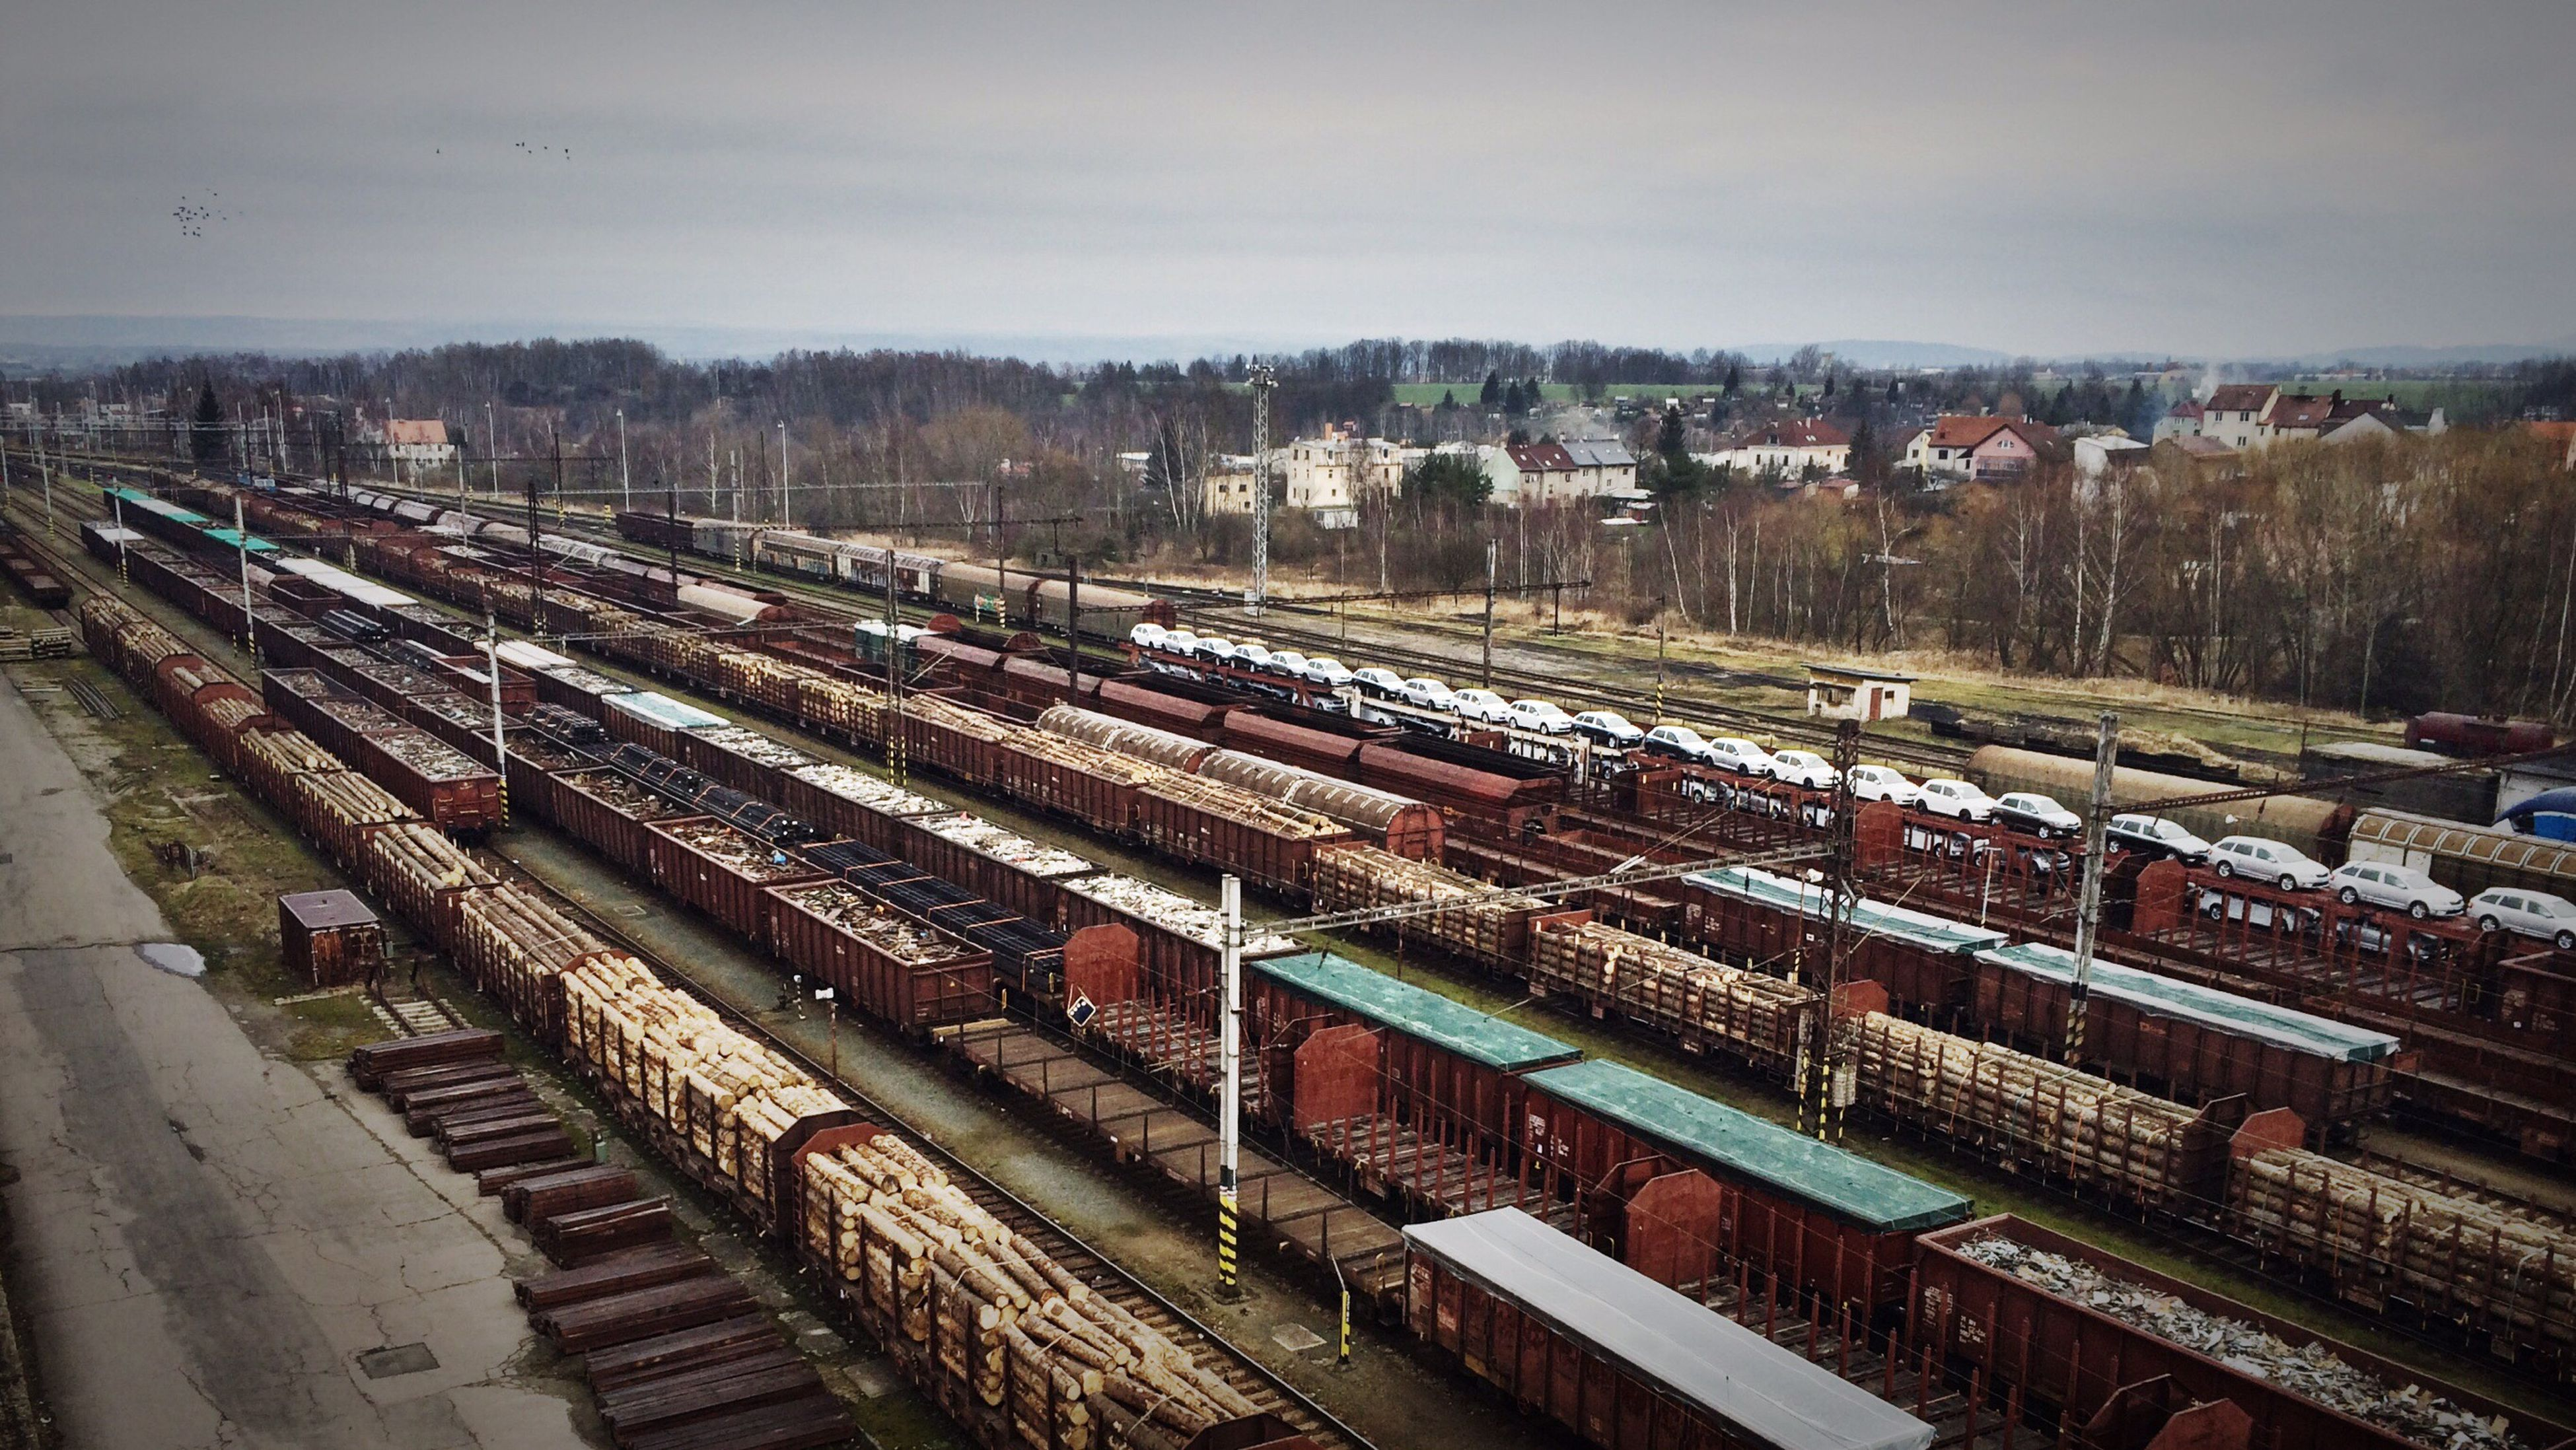 transportation, high angle view, railroad track, built structure, public transportation, sky, rail transportation, building exterior, city, architecture, mode of transport, road, outdoors, railroad station, street, diminishing perspective, car, railroad station platform, day, no people